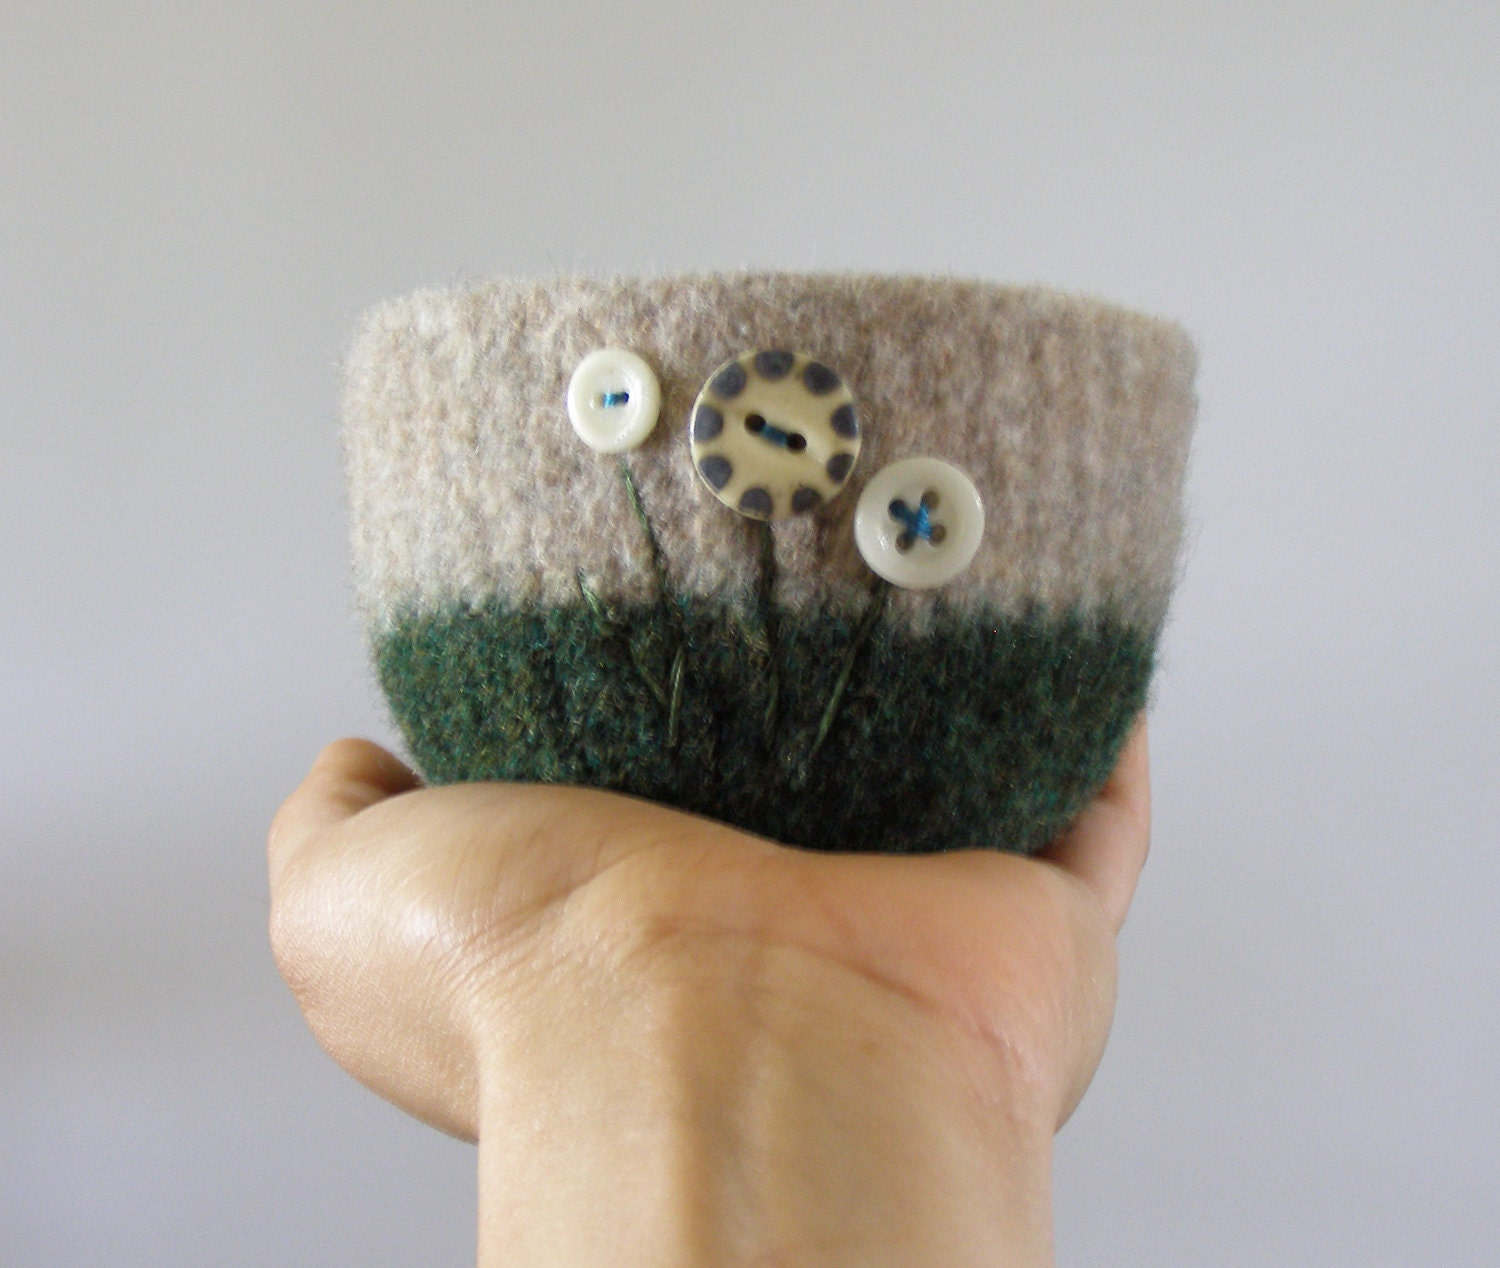 felted wool bowl - forest green and beige wool with cream and navy vintage ceramic buttons -  desk organizer, office container - theFelterie